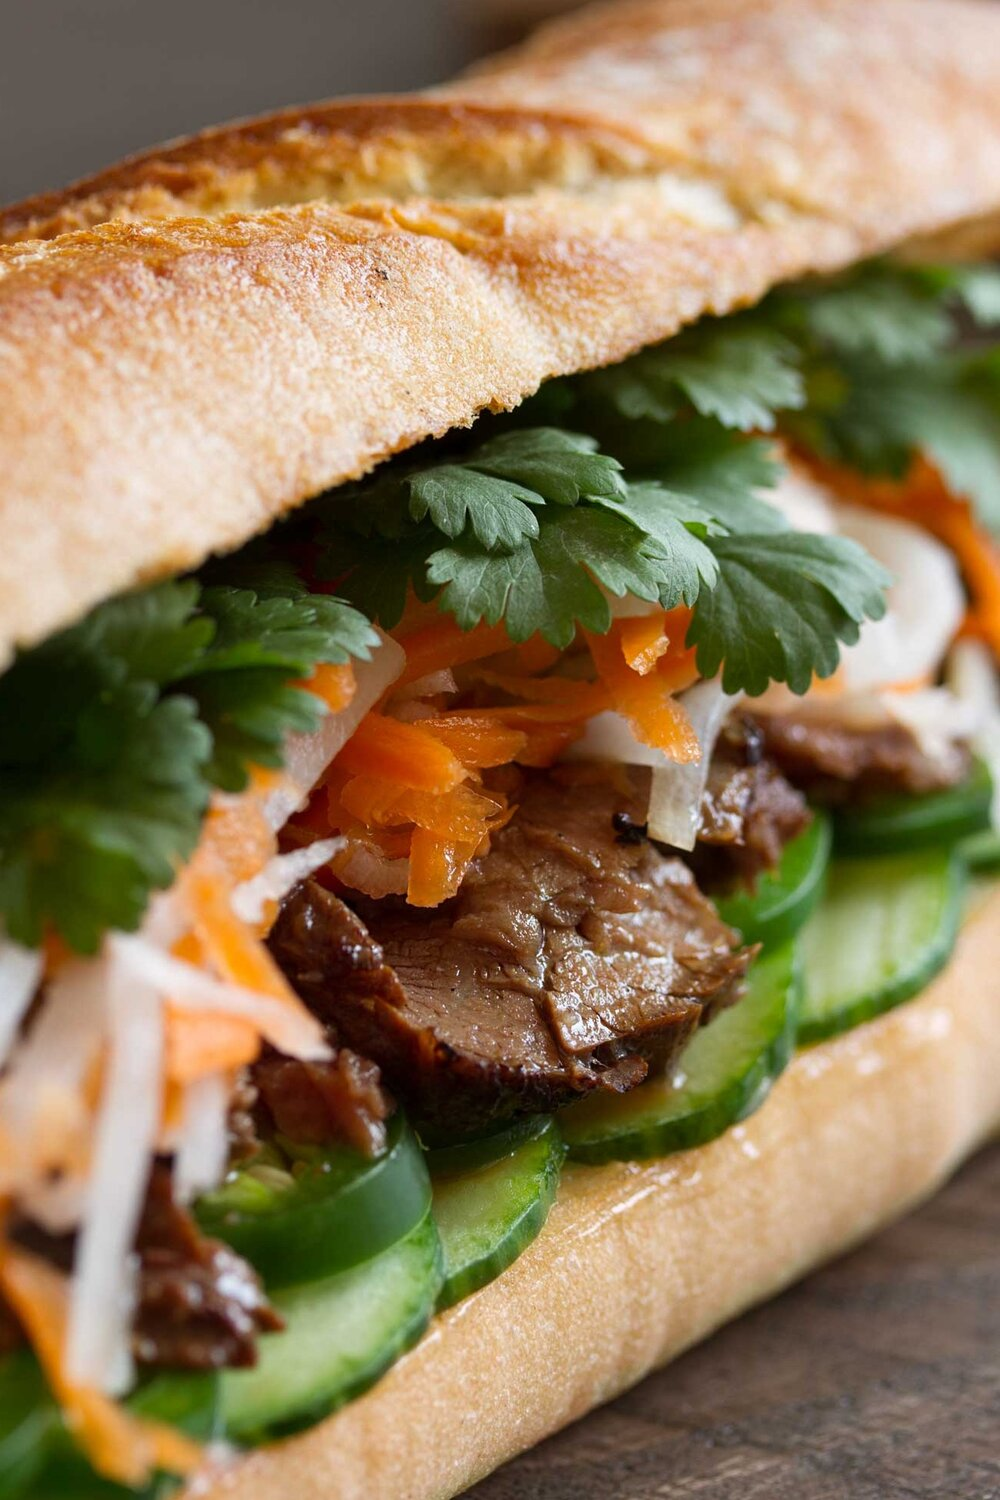 Marinated steak served with pickled vegetables, cilantro and more for a non-traditional version of a Vietnamese banh mi sandwich.